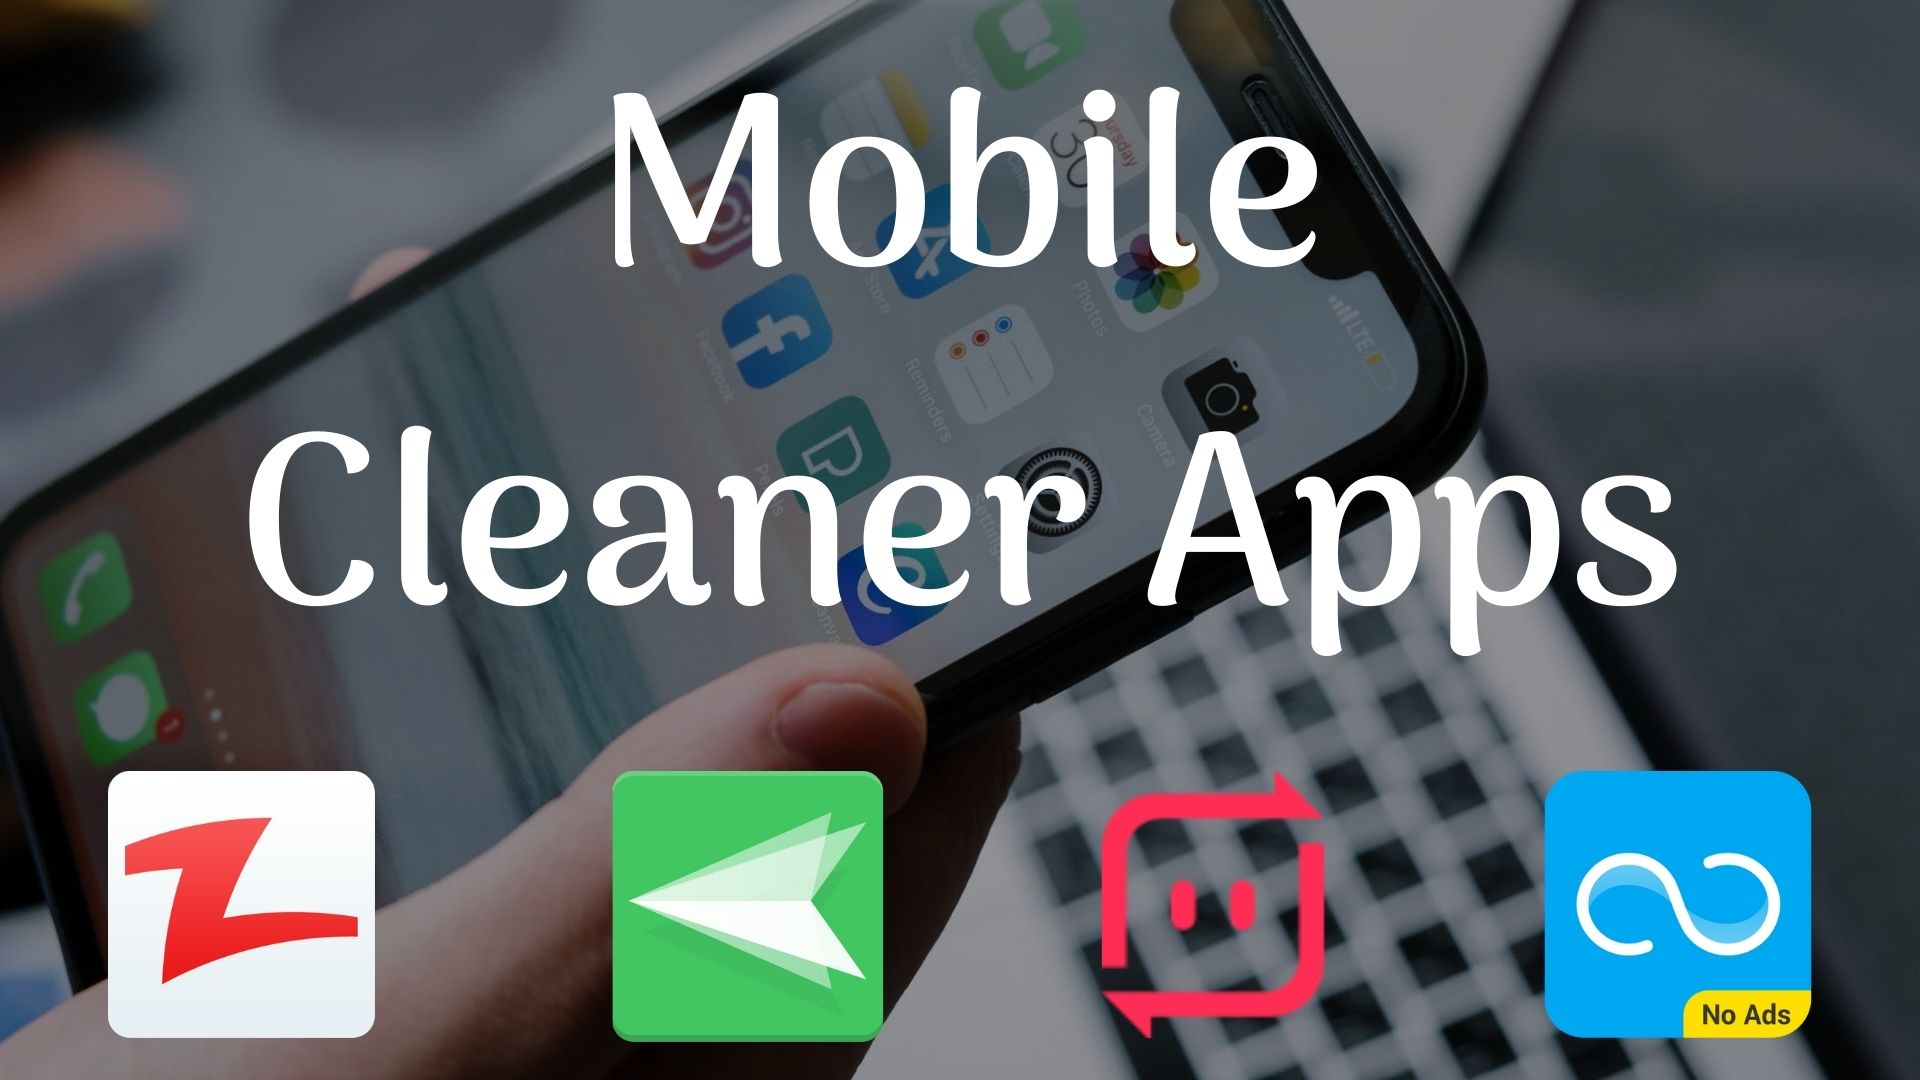 Mobile Cleaner Apps